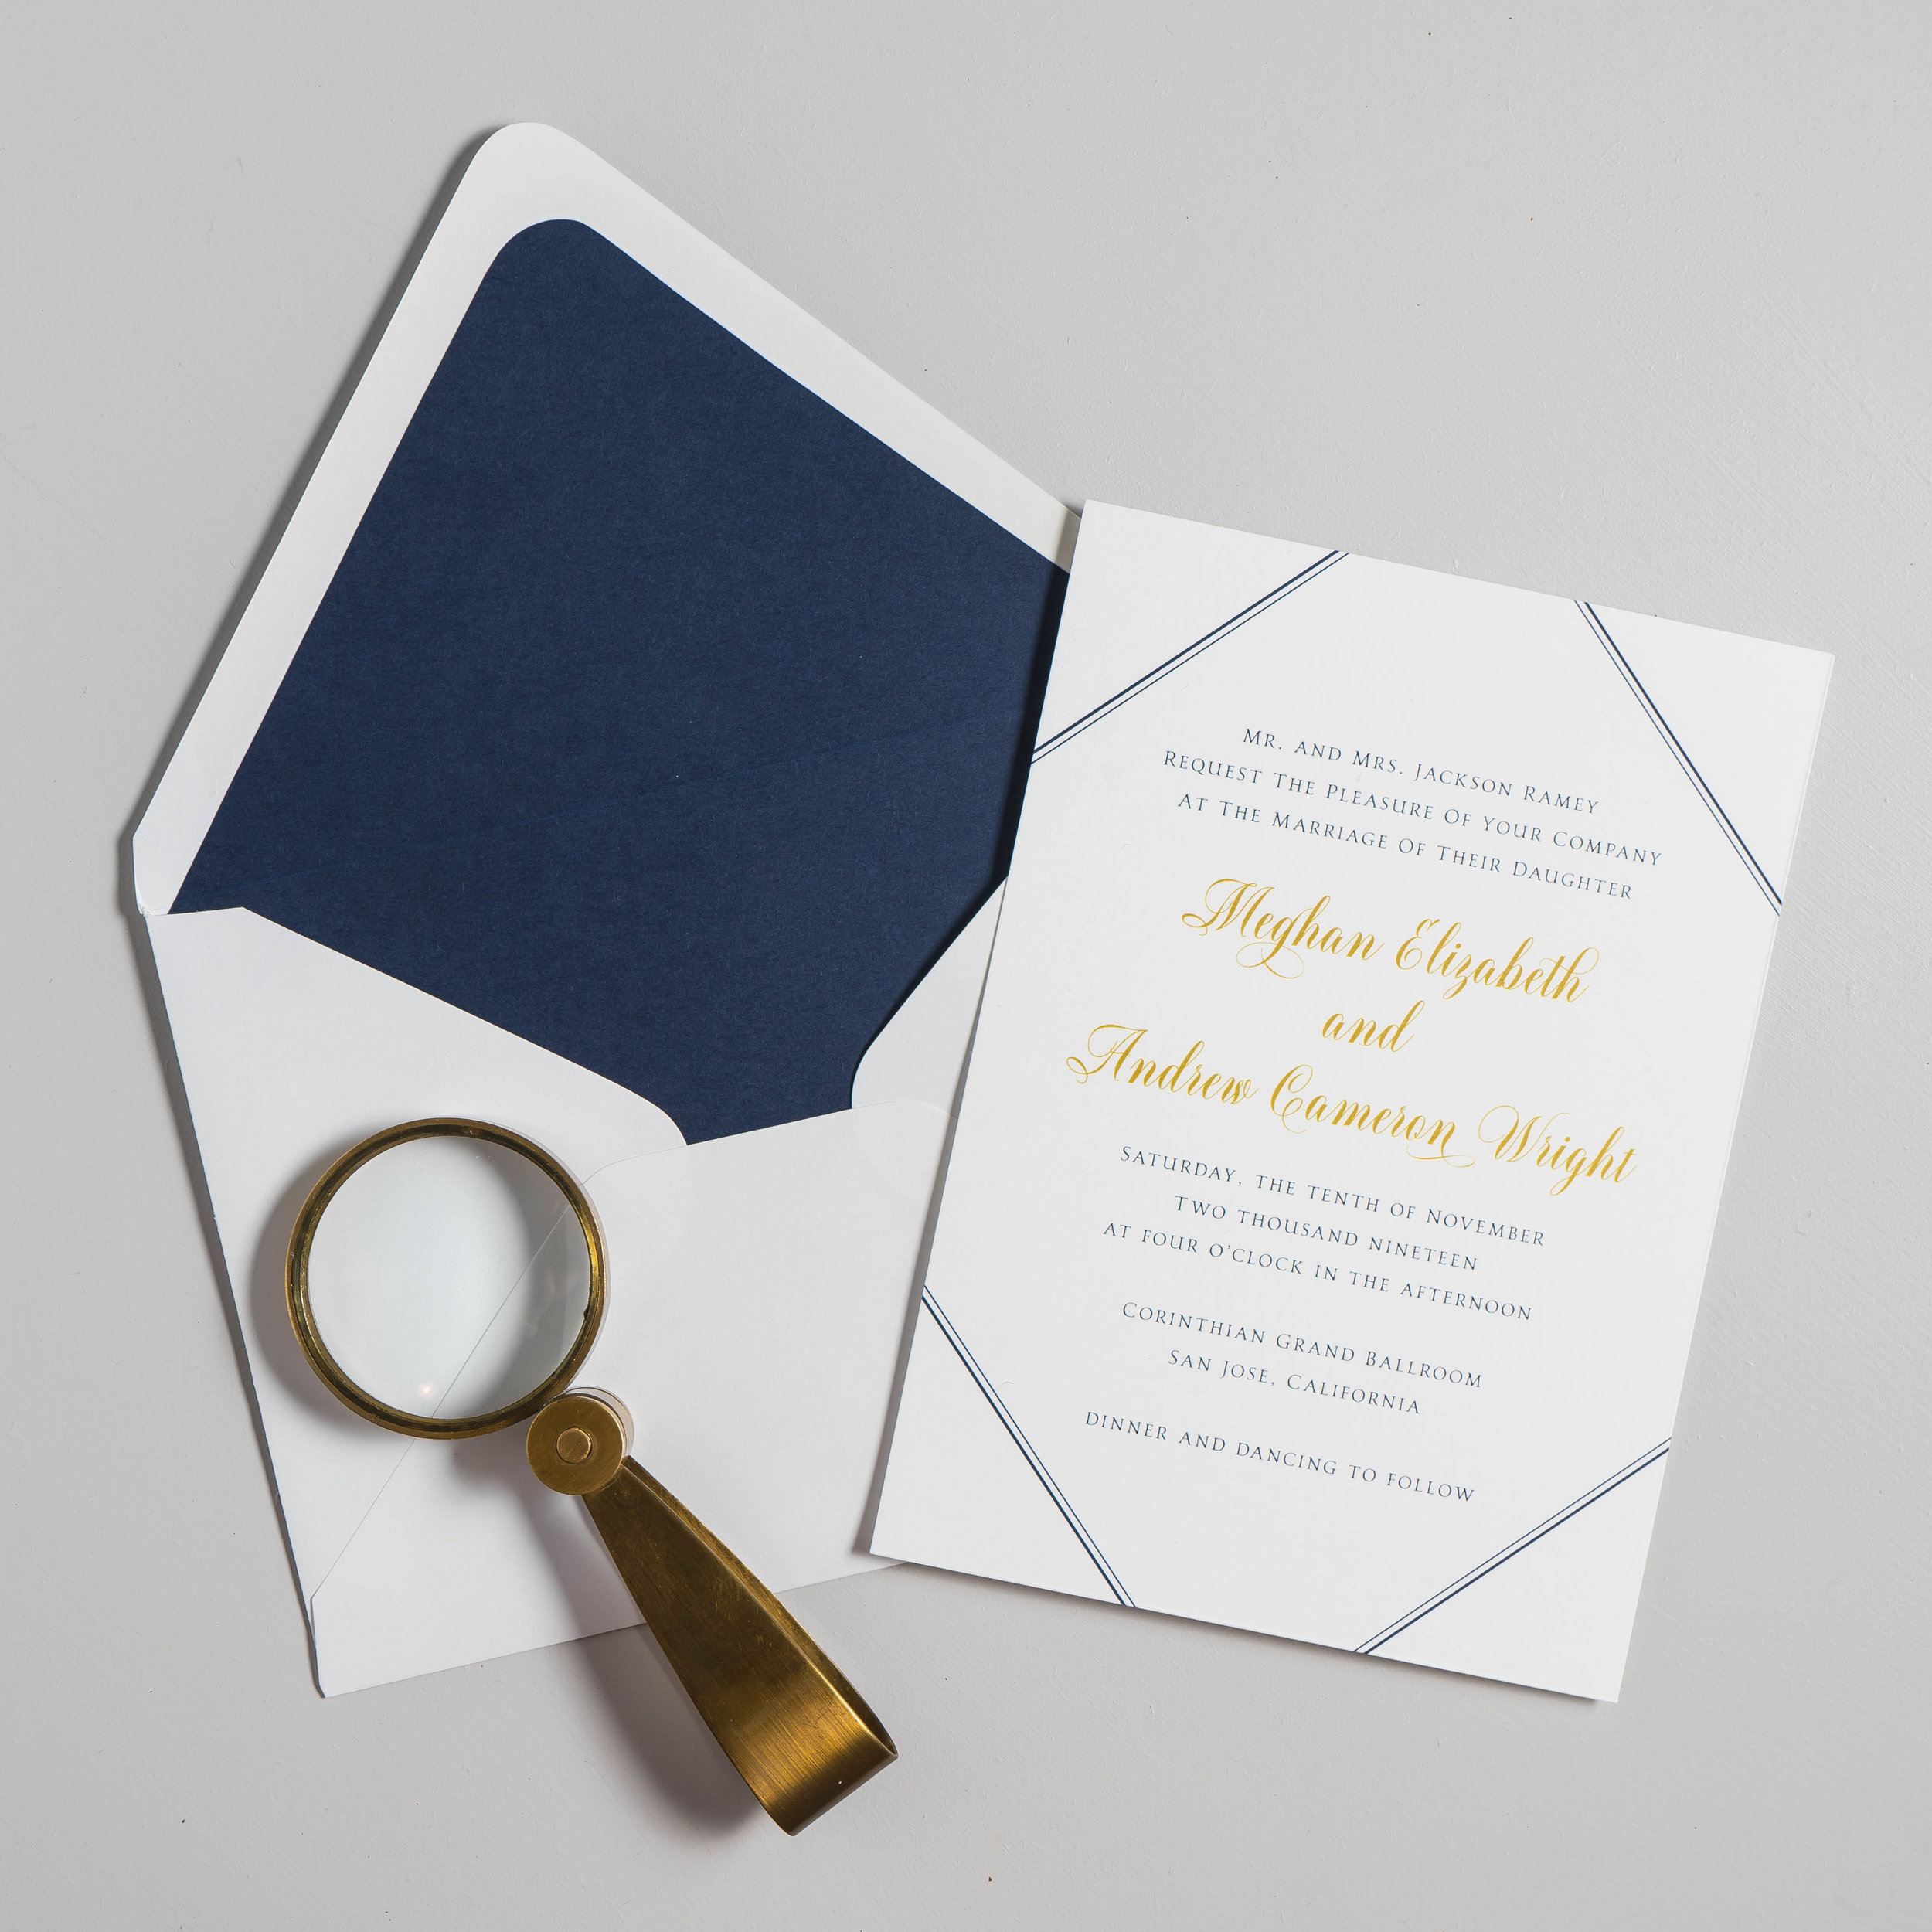 *Classic Navy & Gold Wedding Invitations by Just Jurf-11.jpg